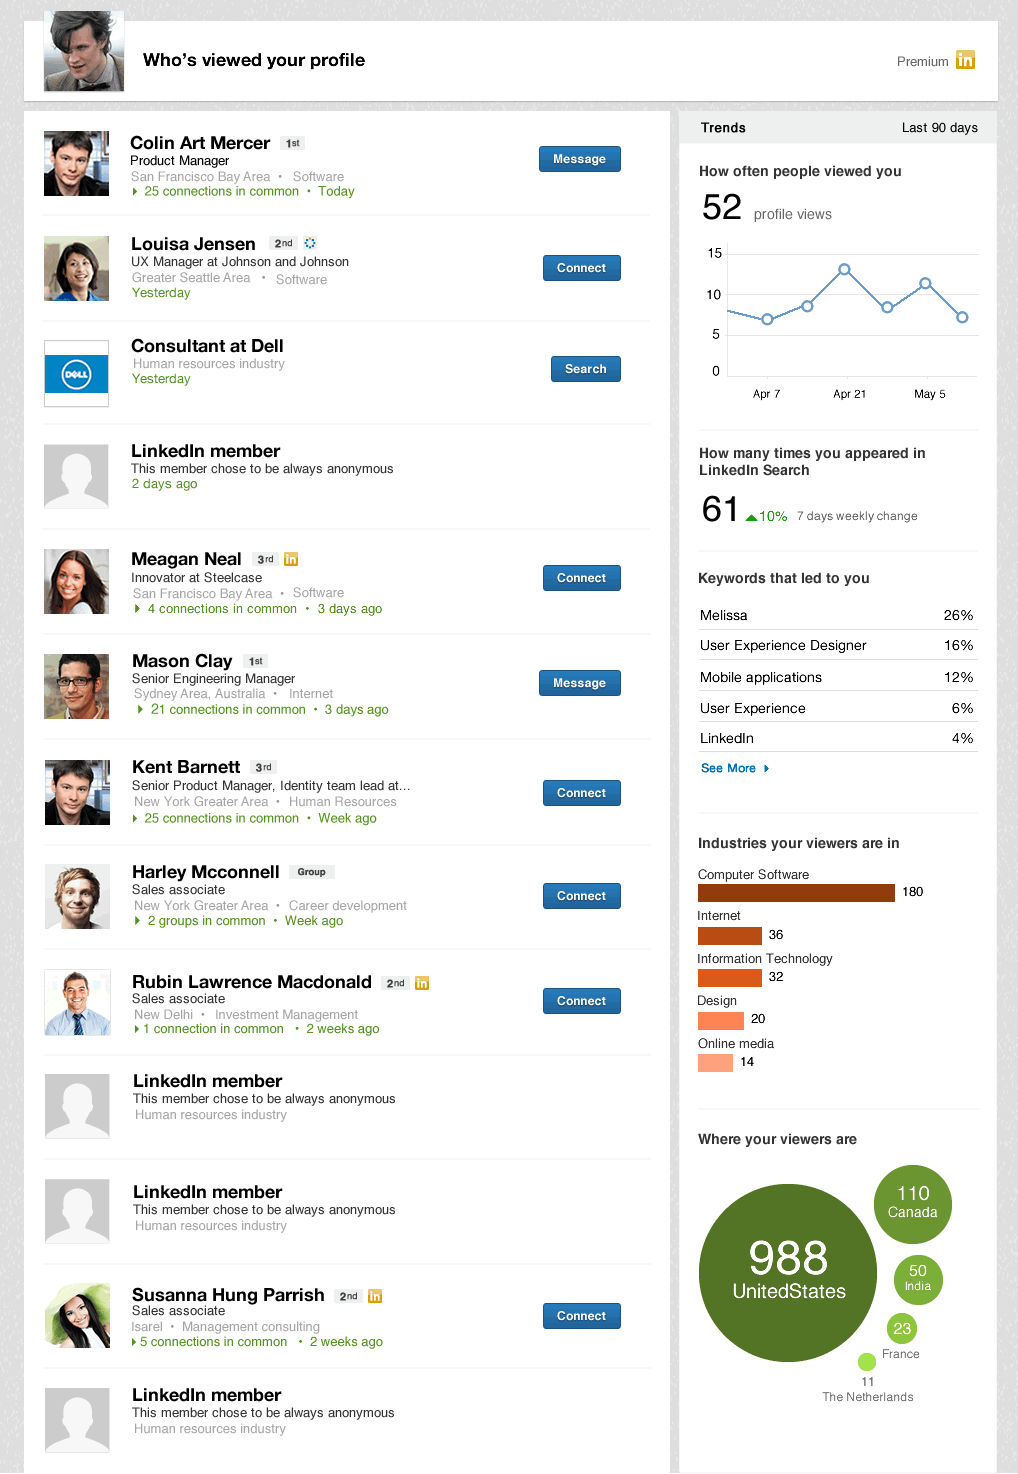 who has viewed your profile